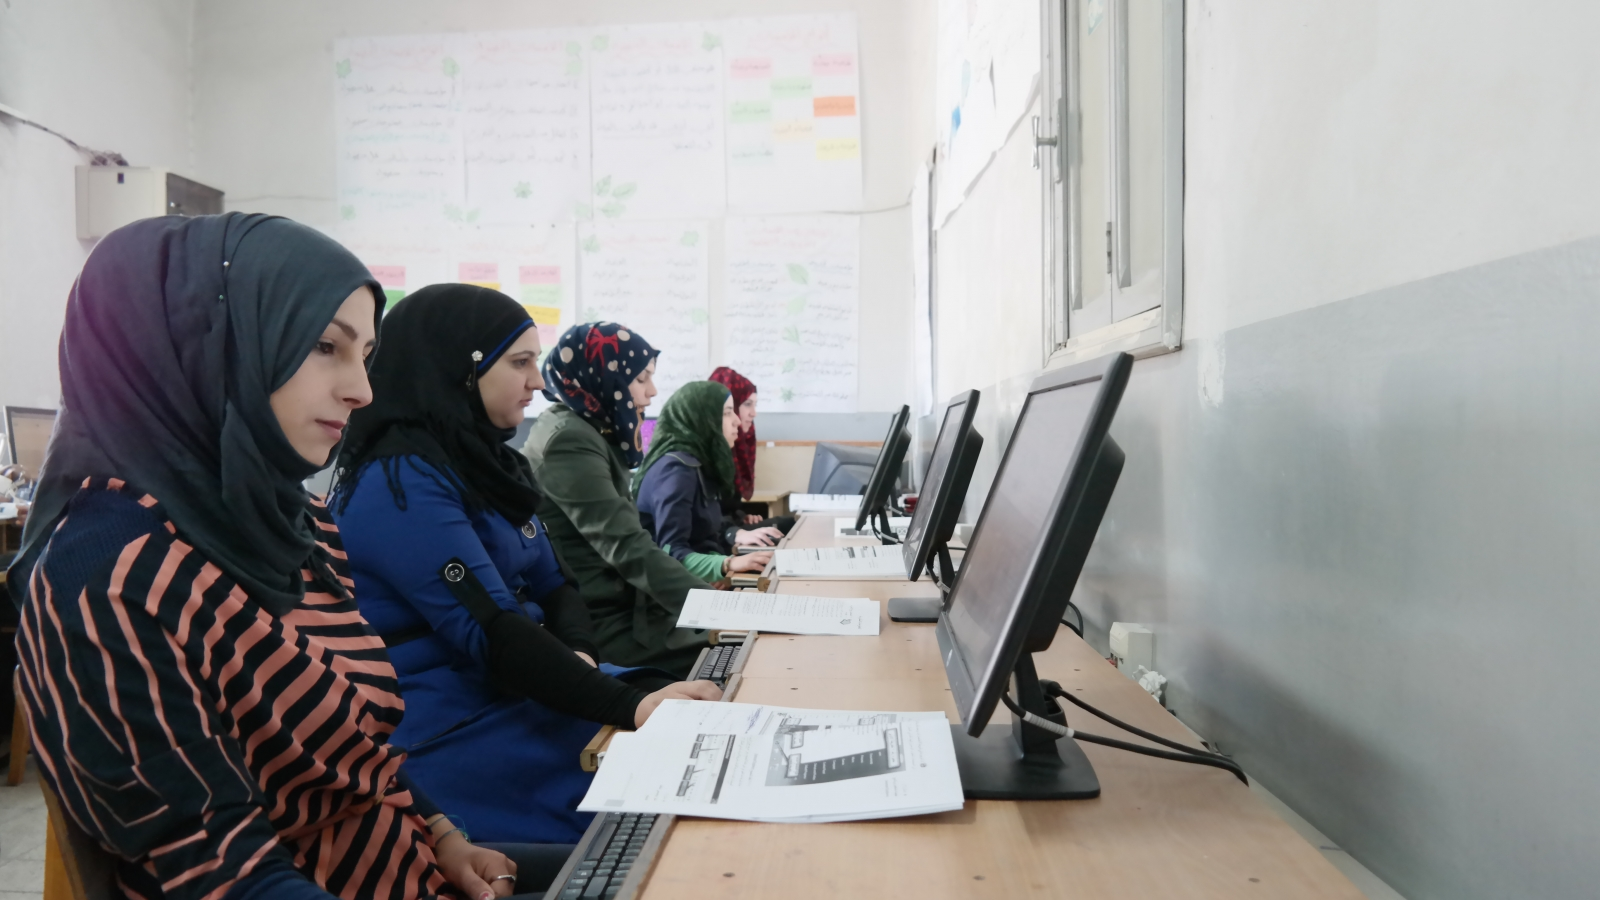 A new electronic application is supporting young Palestinians by collecting data on students and graduates of vocational training centres and tracking their progress in their academic and professional careers.